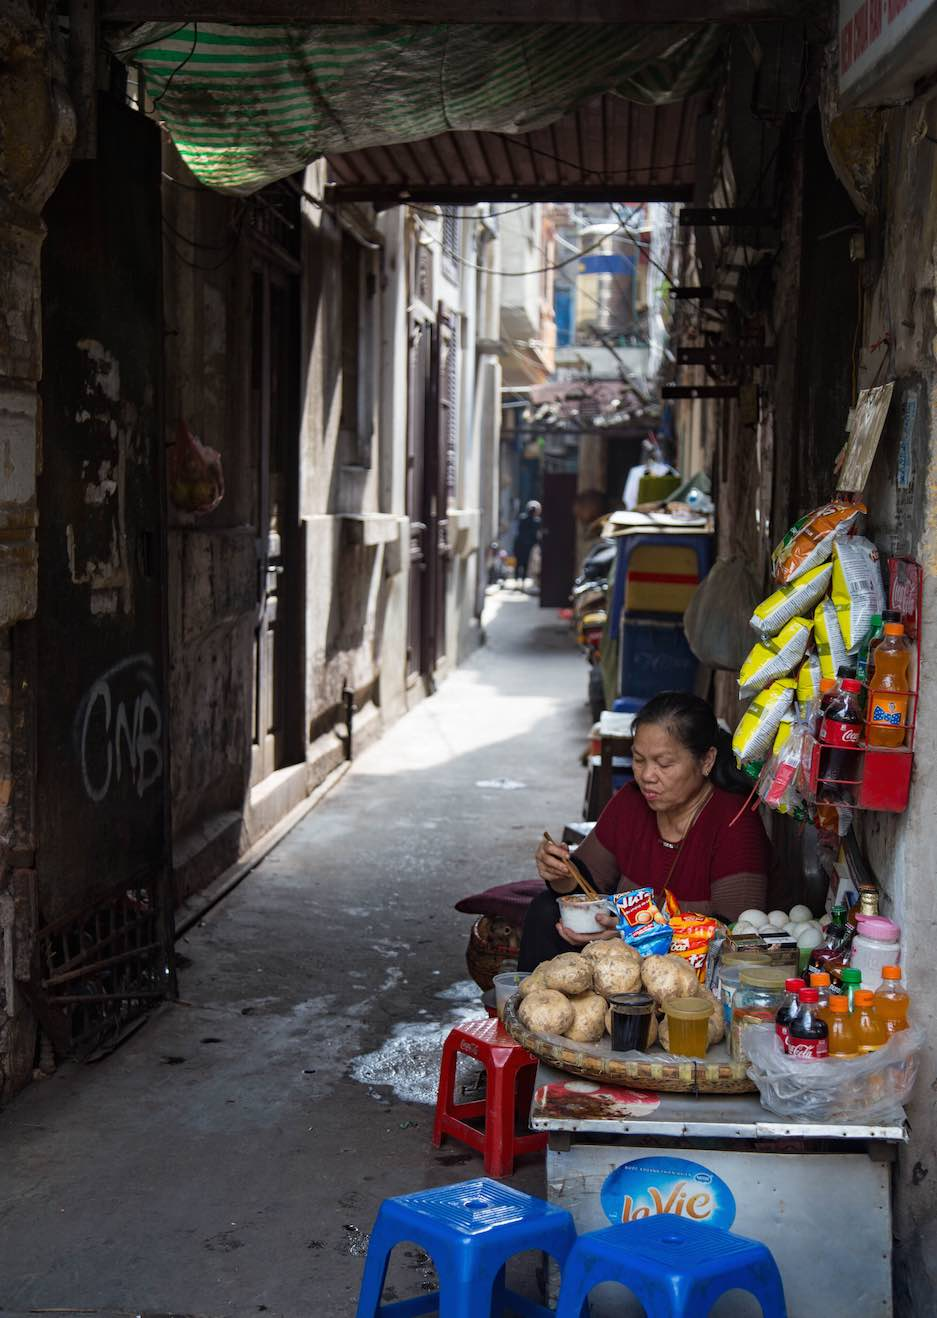 Hanoi-moments of yugen-Old Quarter-narrowstreet